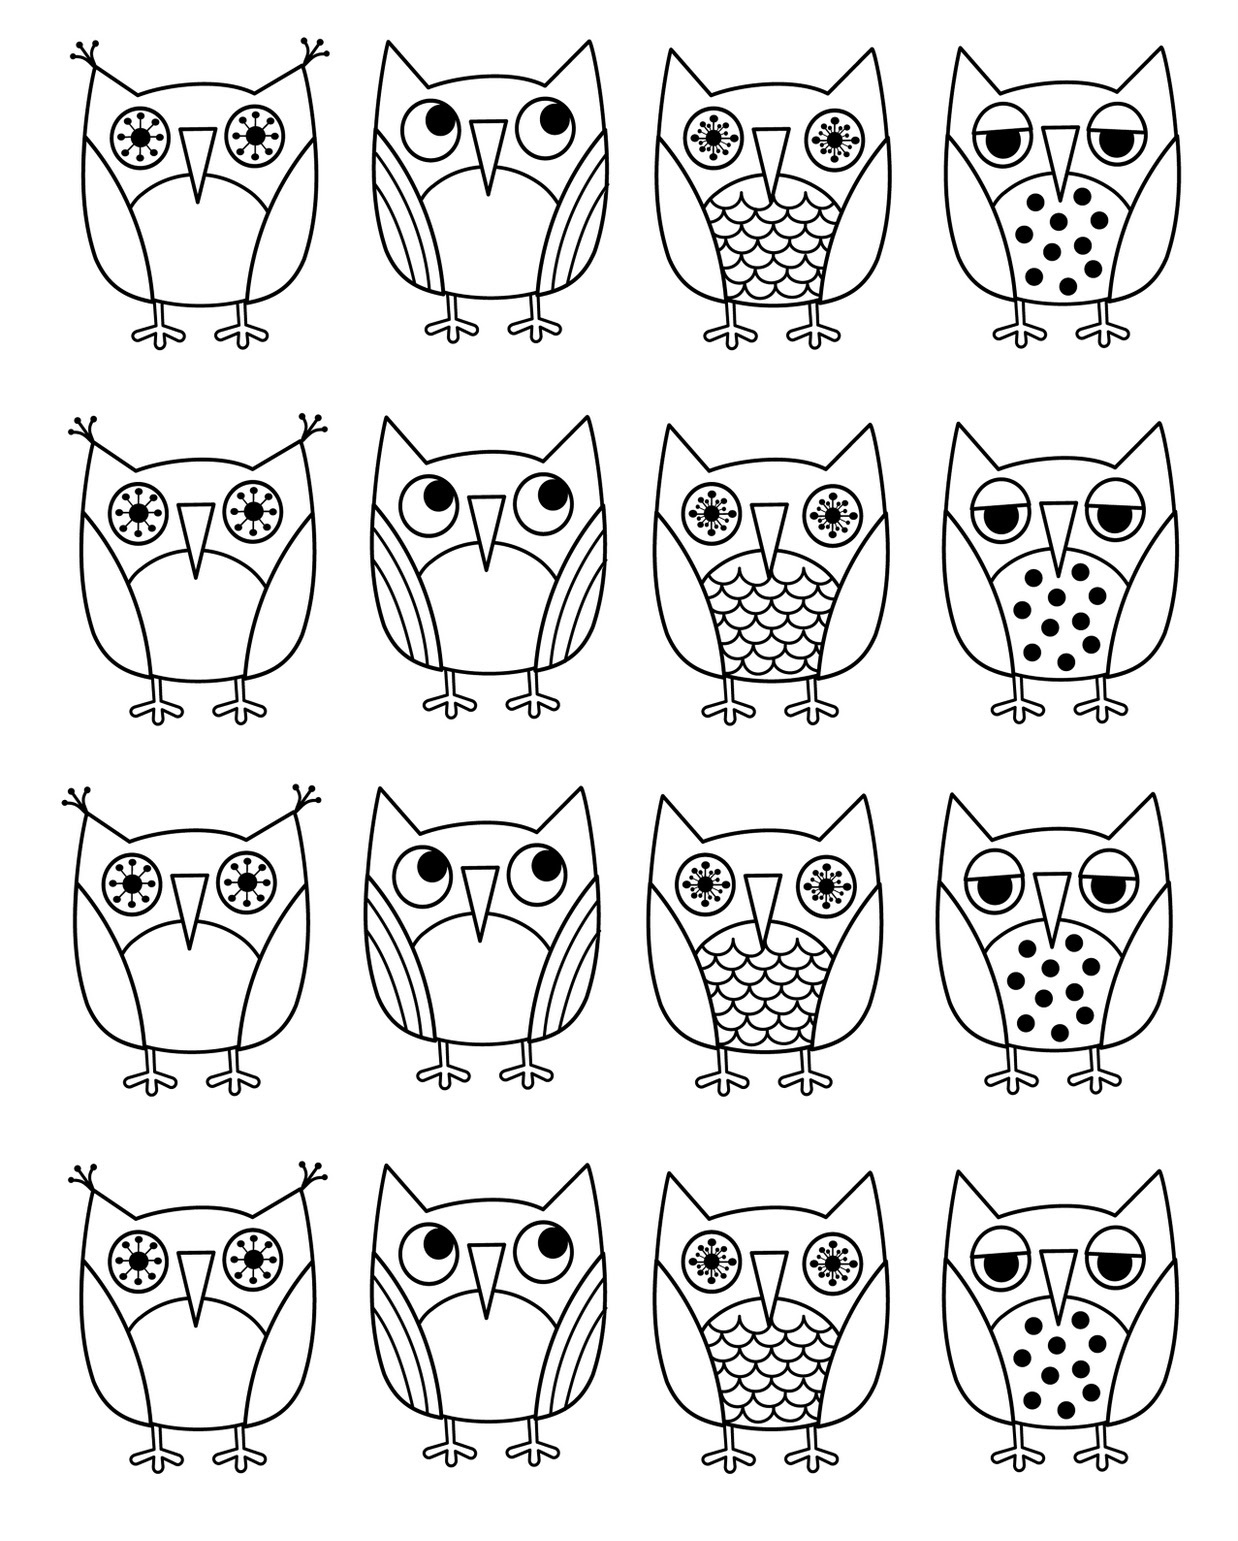 coloring pages of owls for kids - Printable Owl Pictures